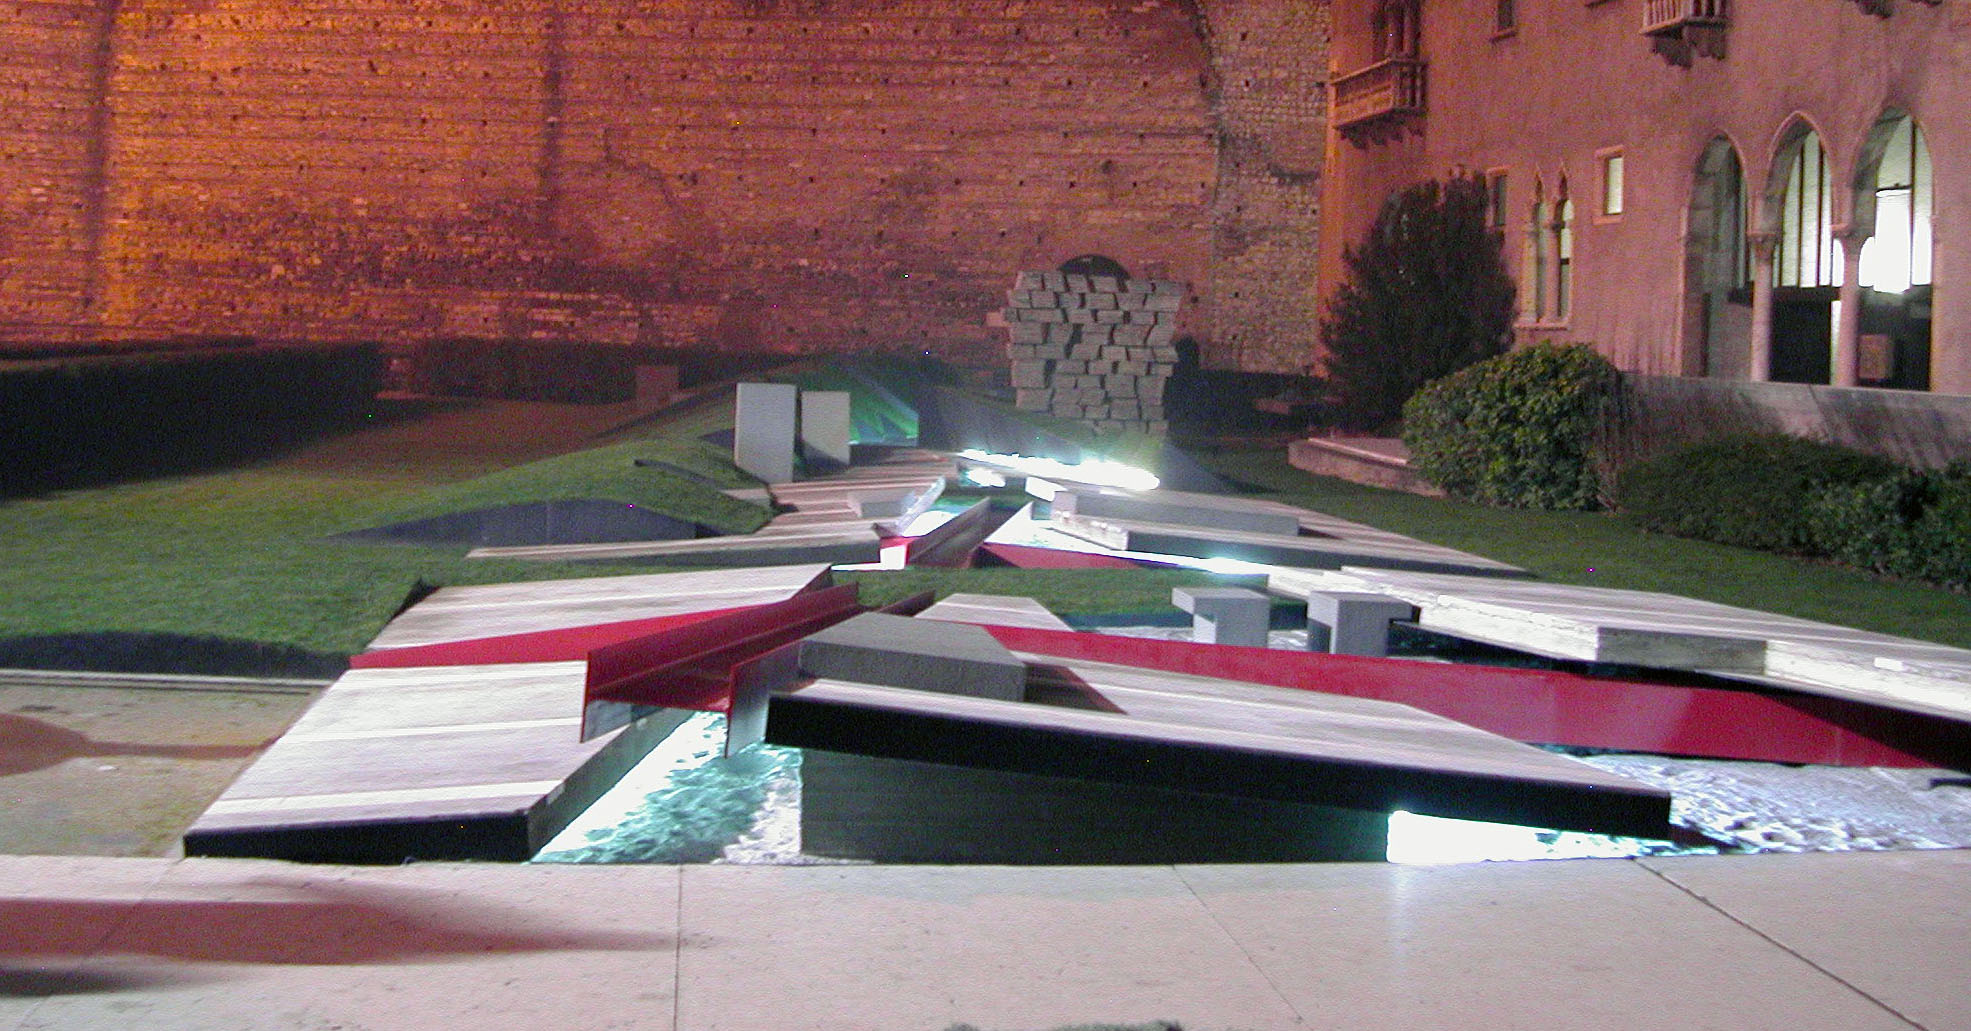 """The Garden of Lost Footsteps"" at Museo di Castelvecchio, Verona, Italy by Eisenman 2004 / Photo: Reg Prentice © 2004"